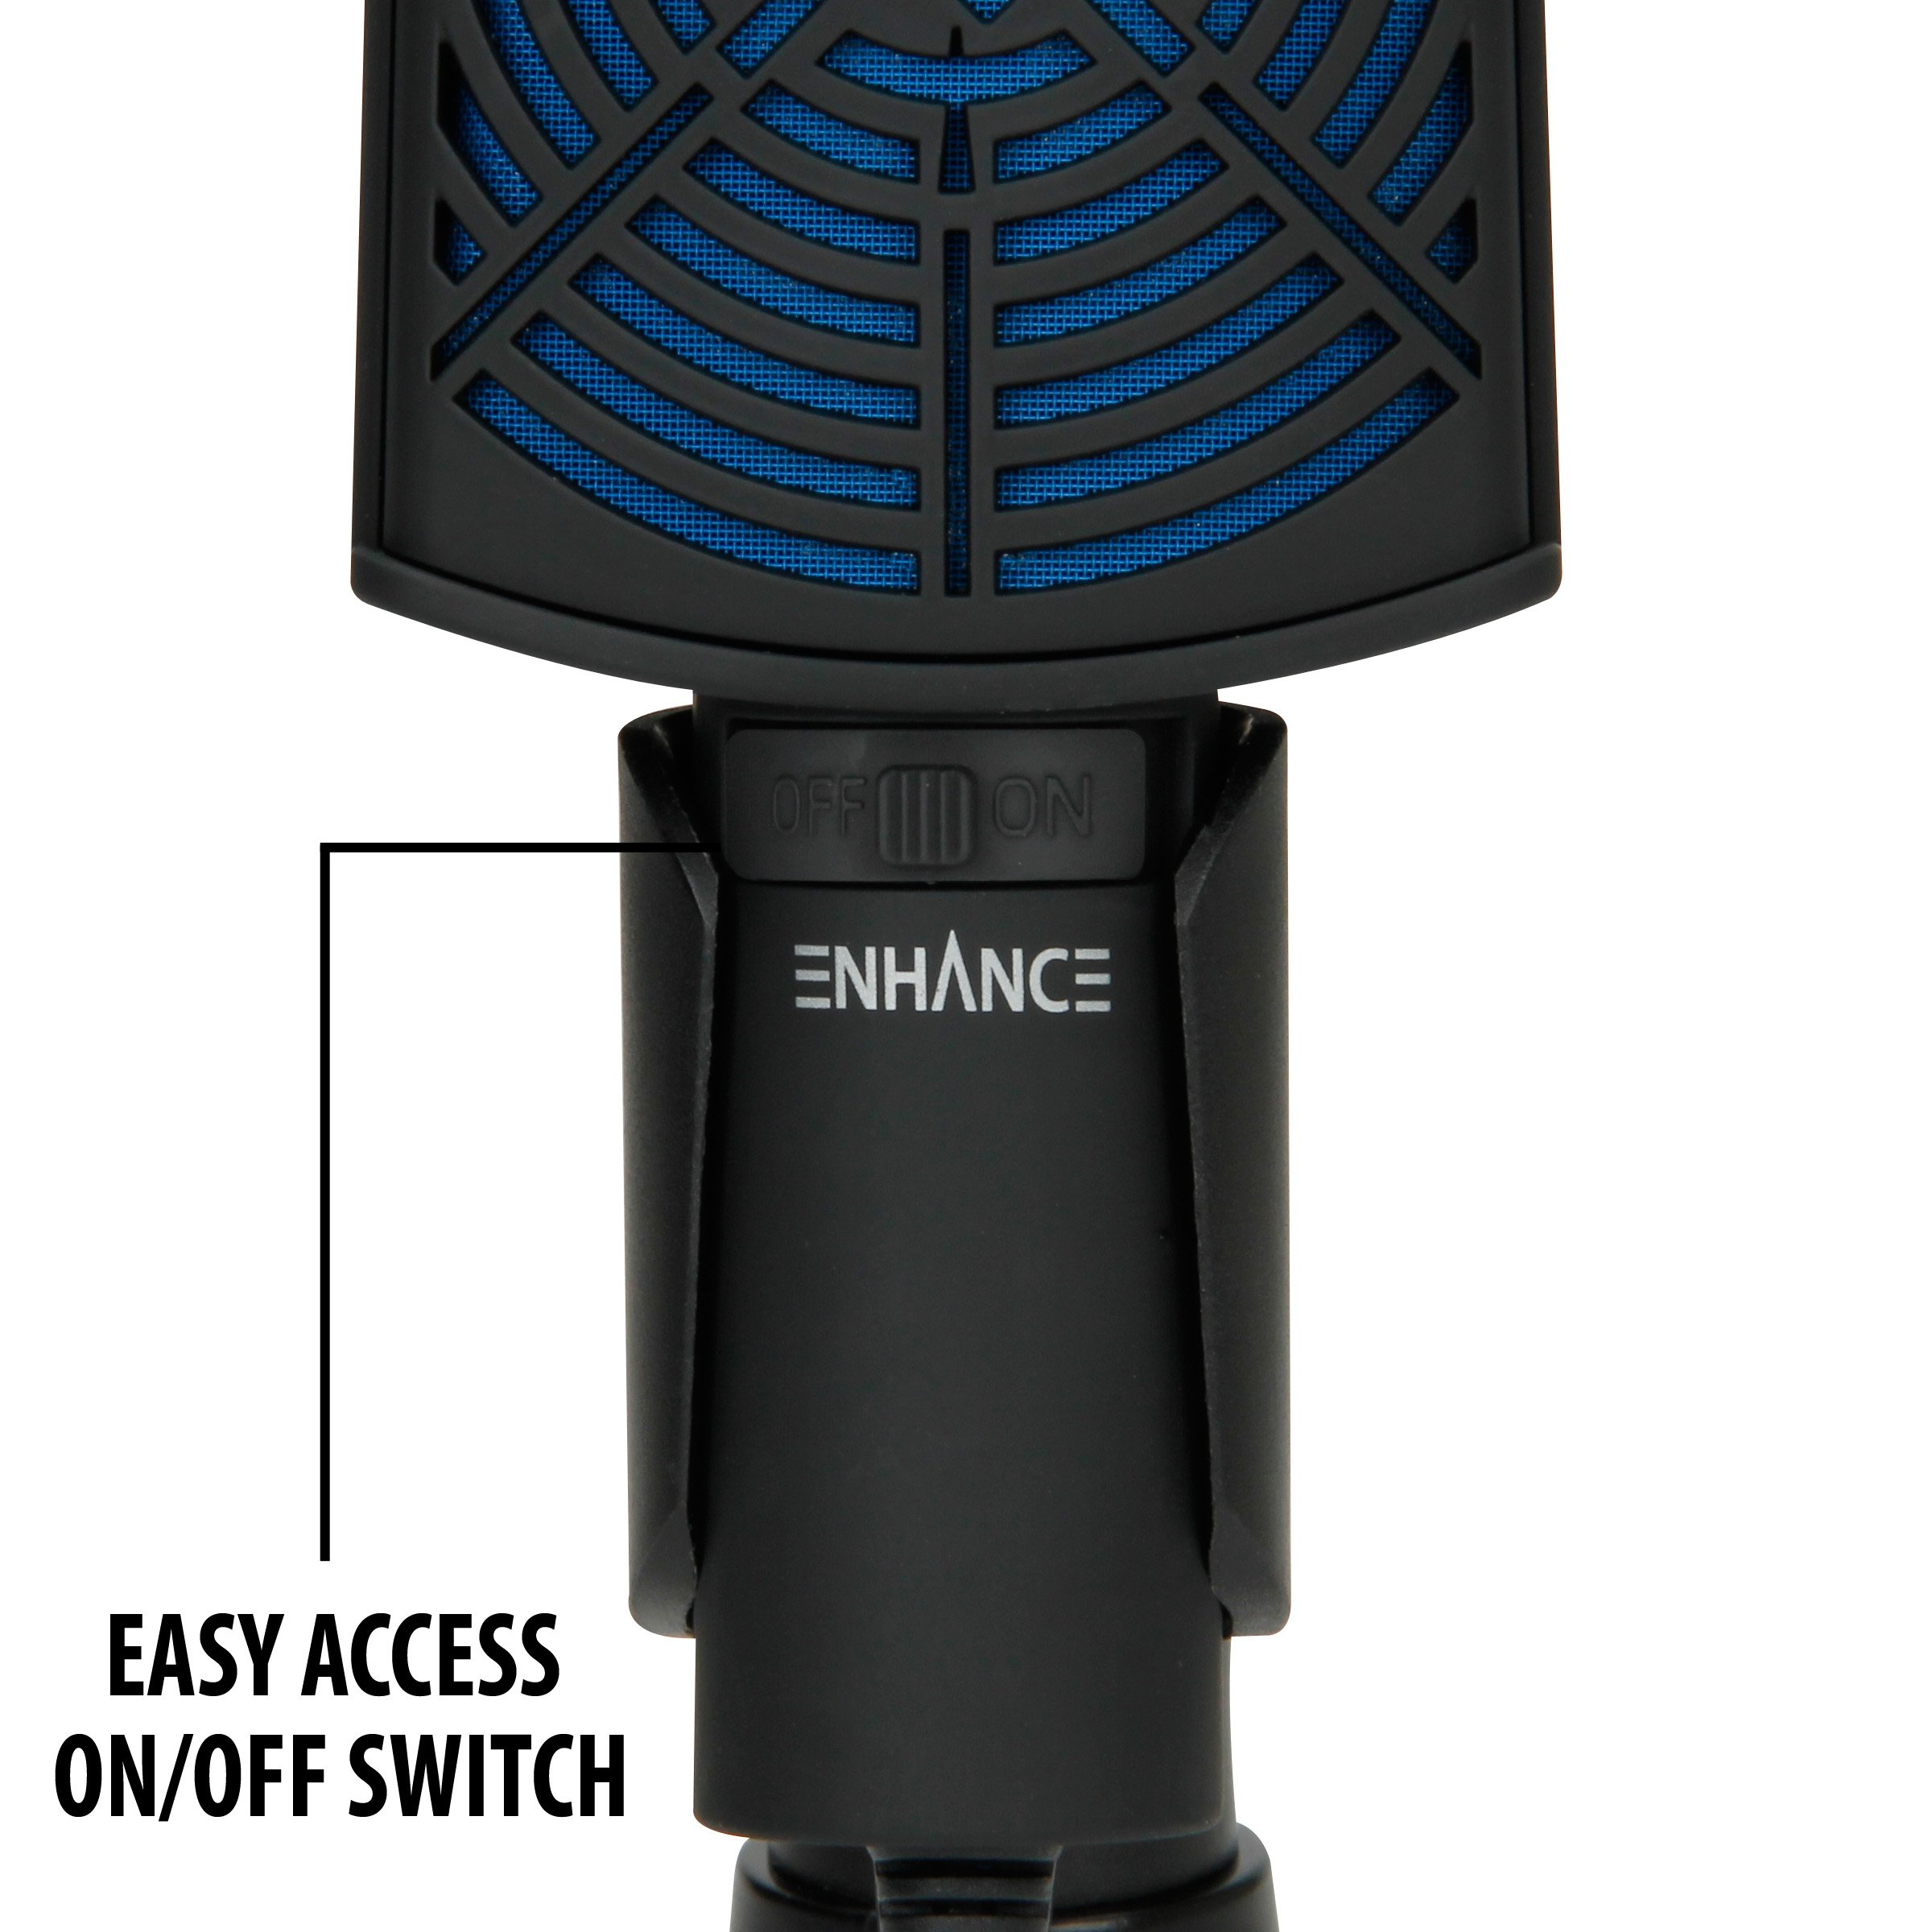 ENHANCE USB Condenser Gaming Microphone - Computer Desktop Mic for Streaming & Recording with Adjustable Stand Design and Mute Switch - For Skype, Conference Calls, Twitch, Youtube, and Discord - Blue by ENHANCE (Image #4)